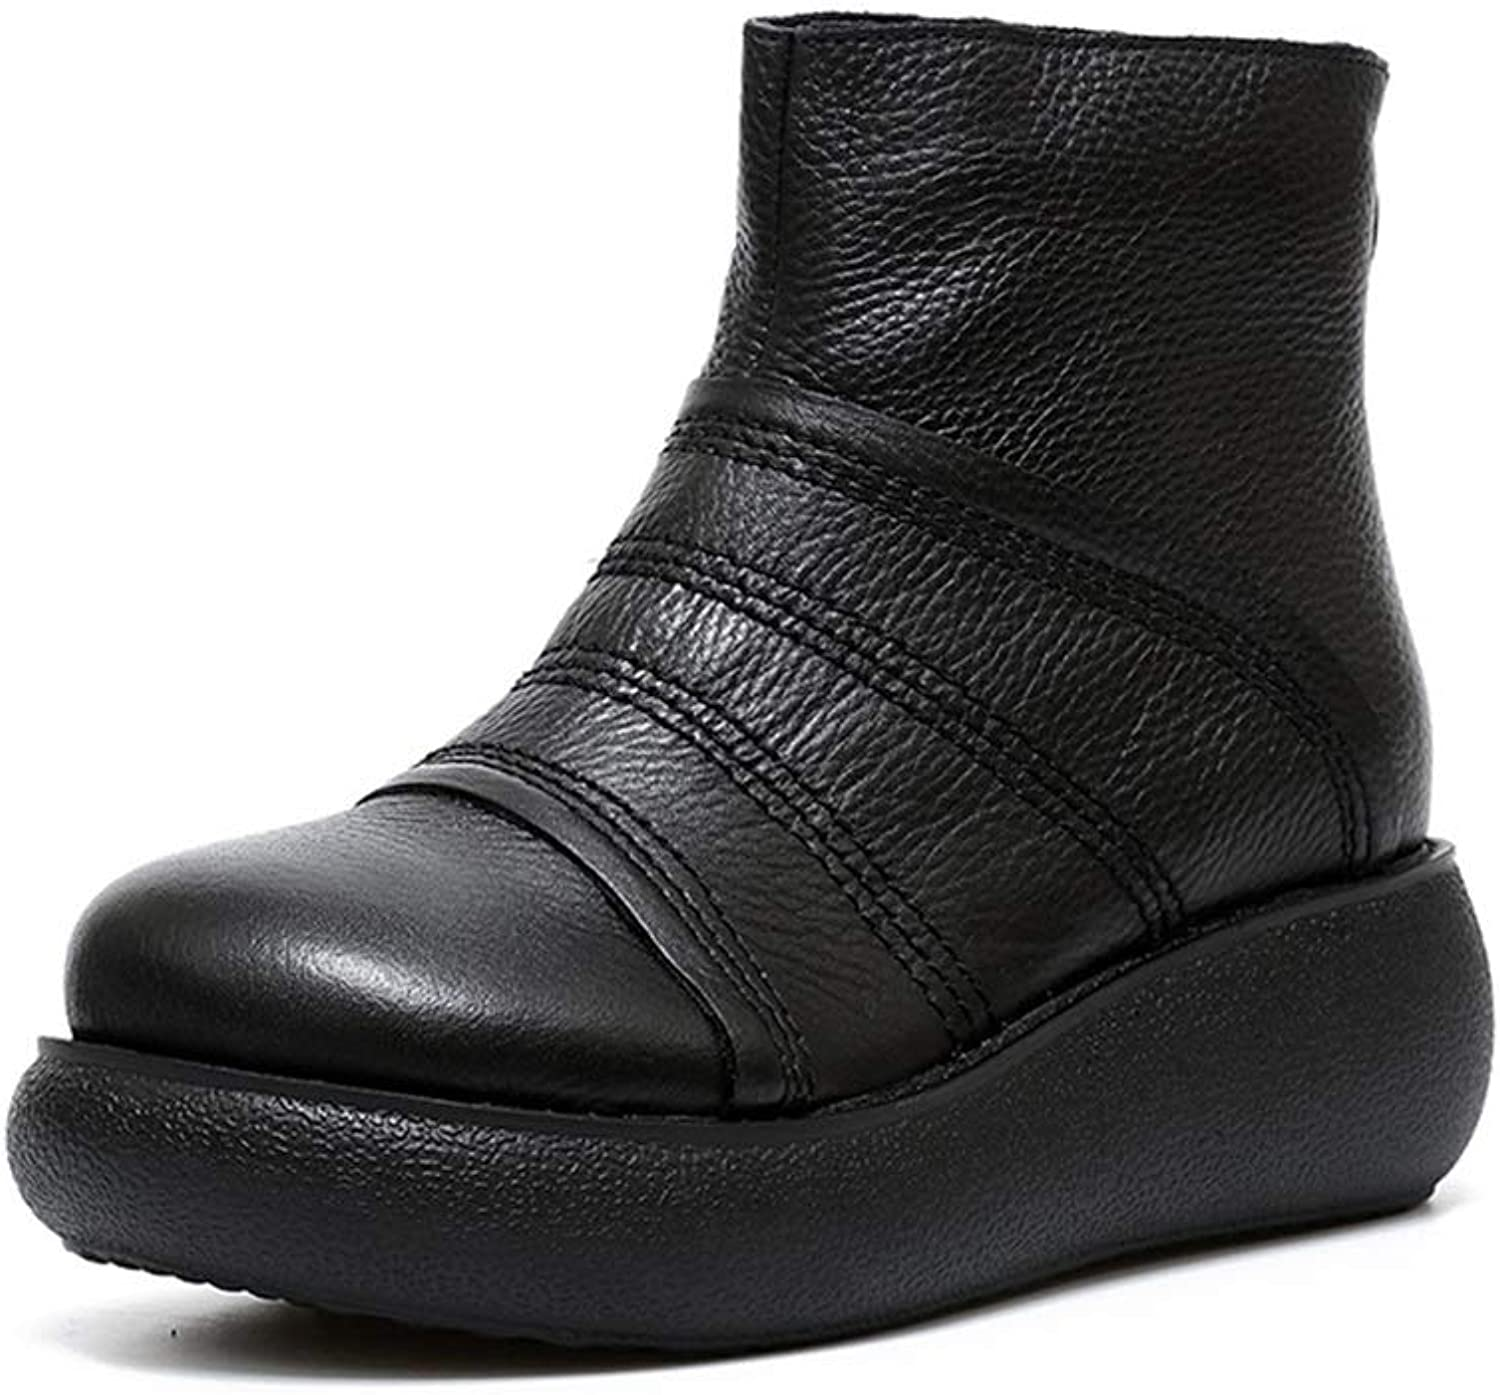 Womens Leather shoes Wedges Boots Platform shoes Slip On Ankle Boots Fashion Casual shoes Martin Boots Black Brown (color   Black, Size   35)